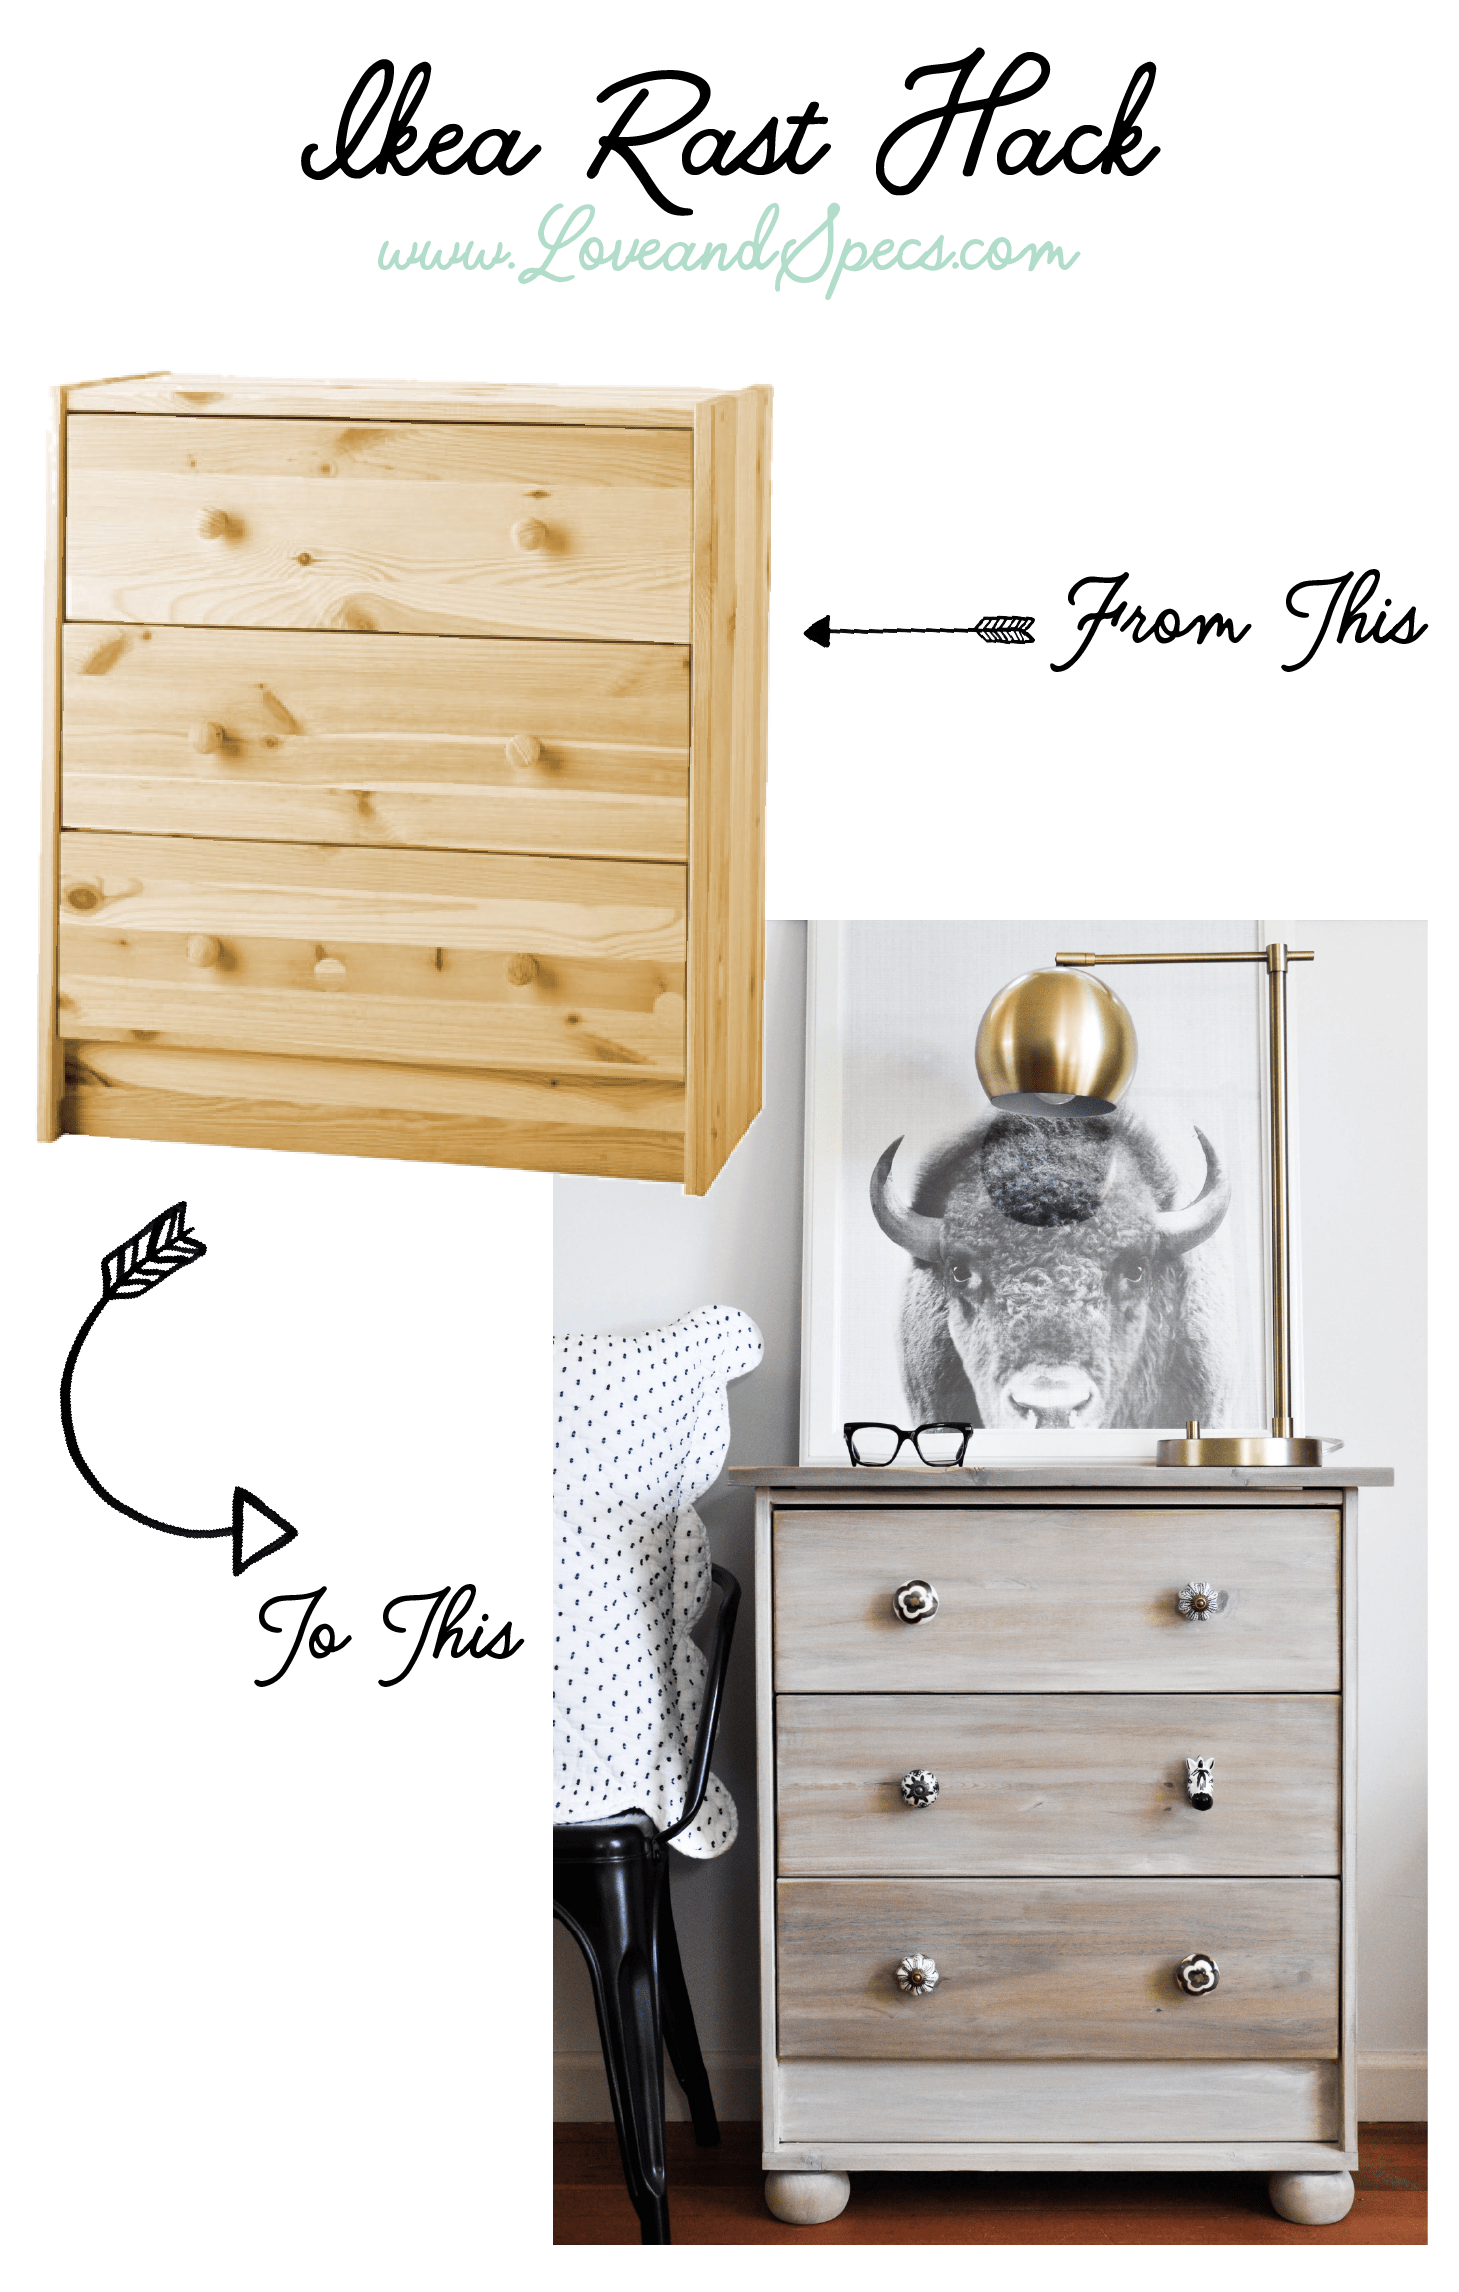 This transformed Ikea rast hack compliments the antique handles.